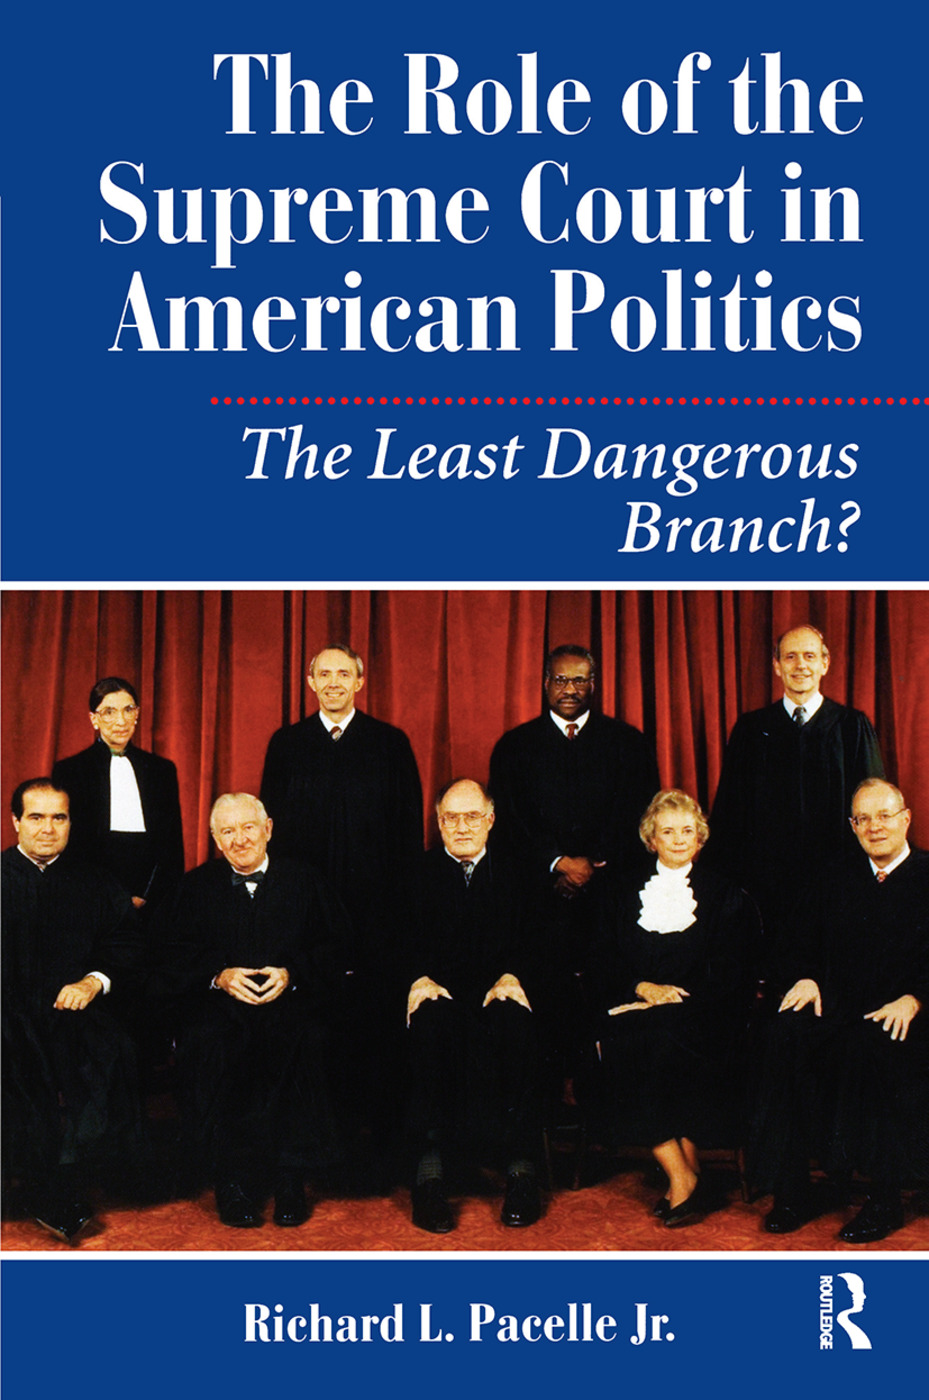 The Role Of The Supreme Court In American Politics: The Least Dangerous Branch? book cover